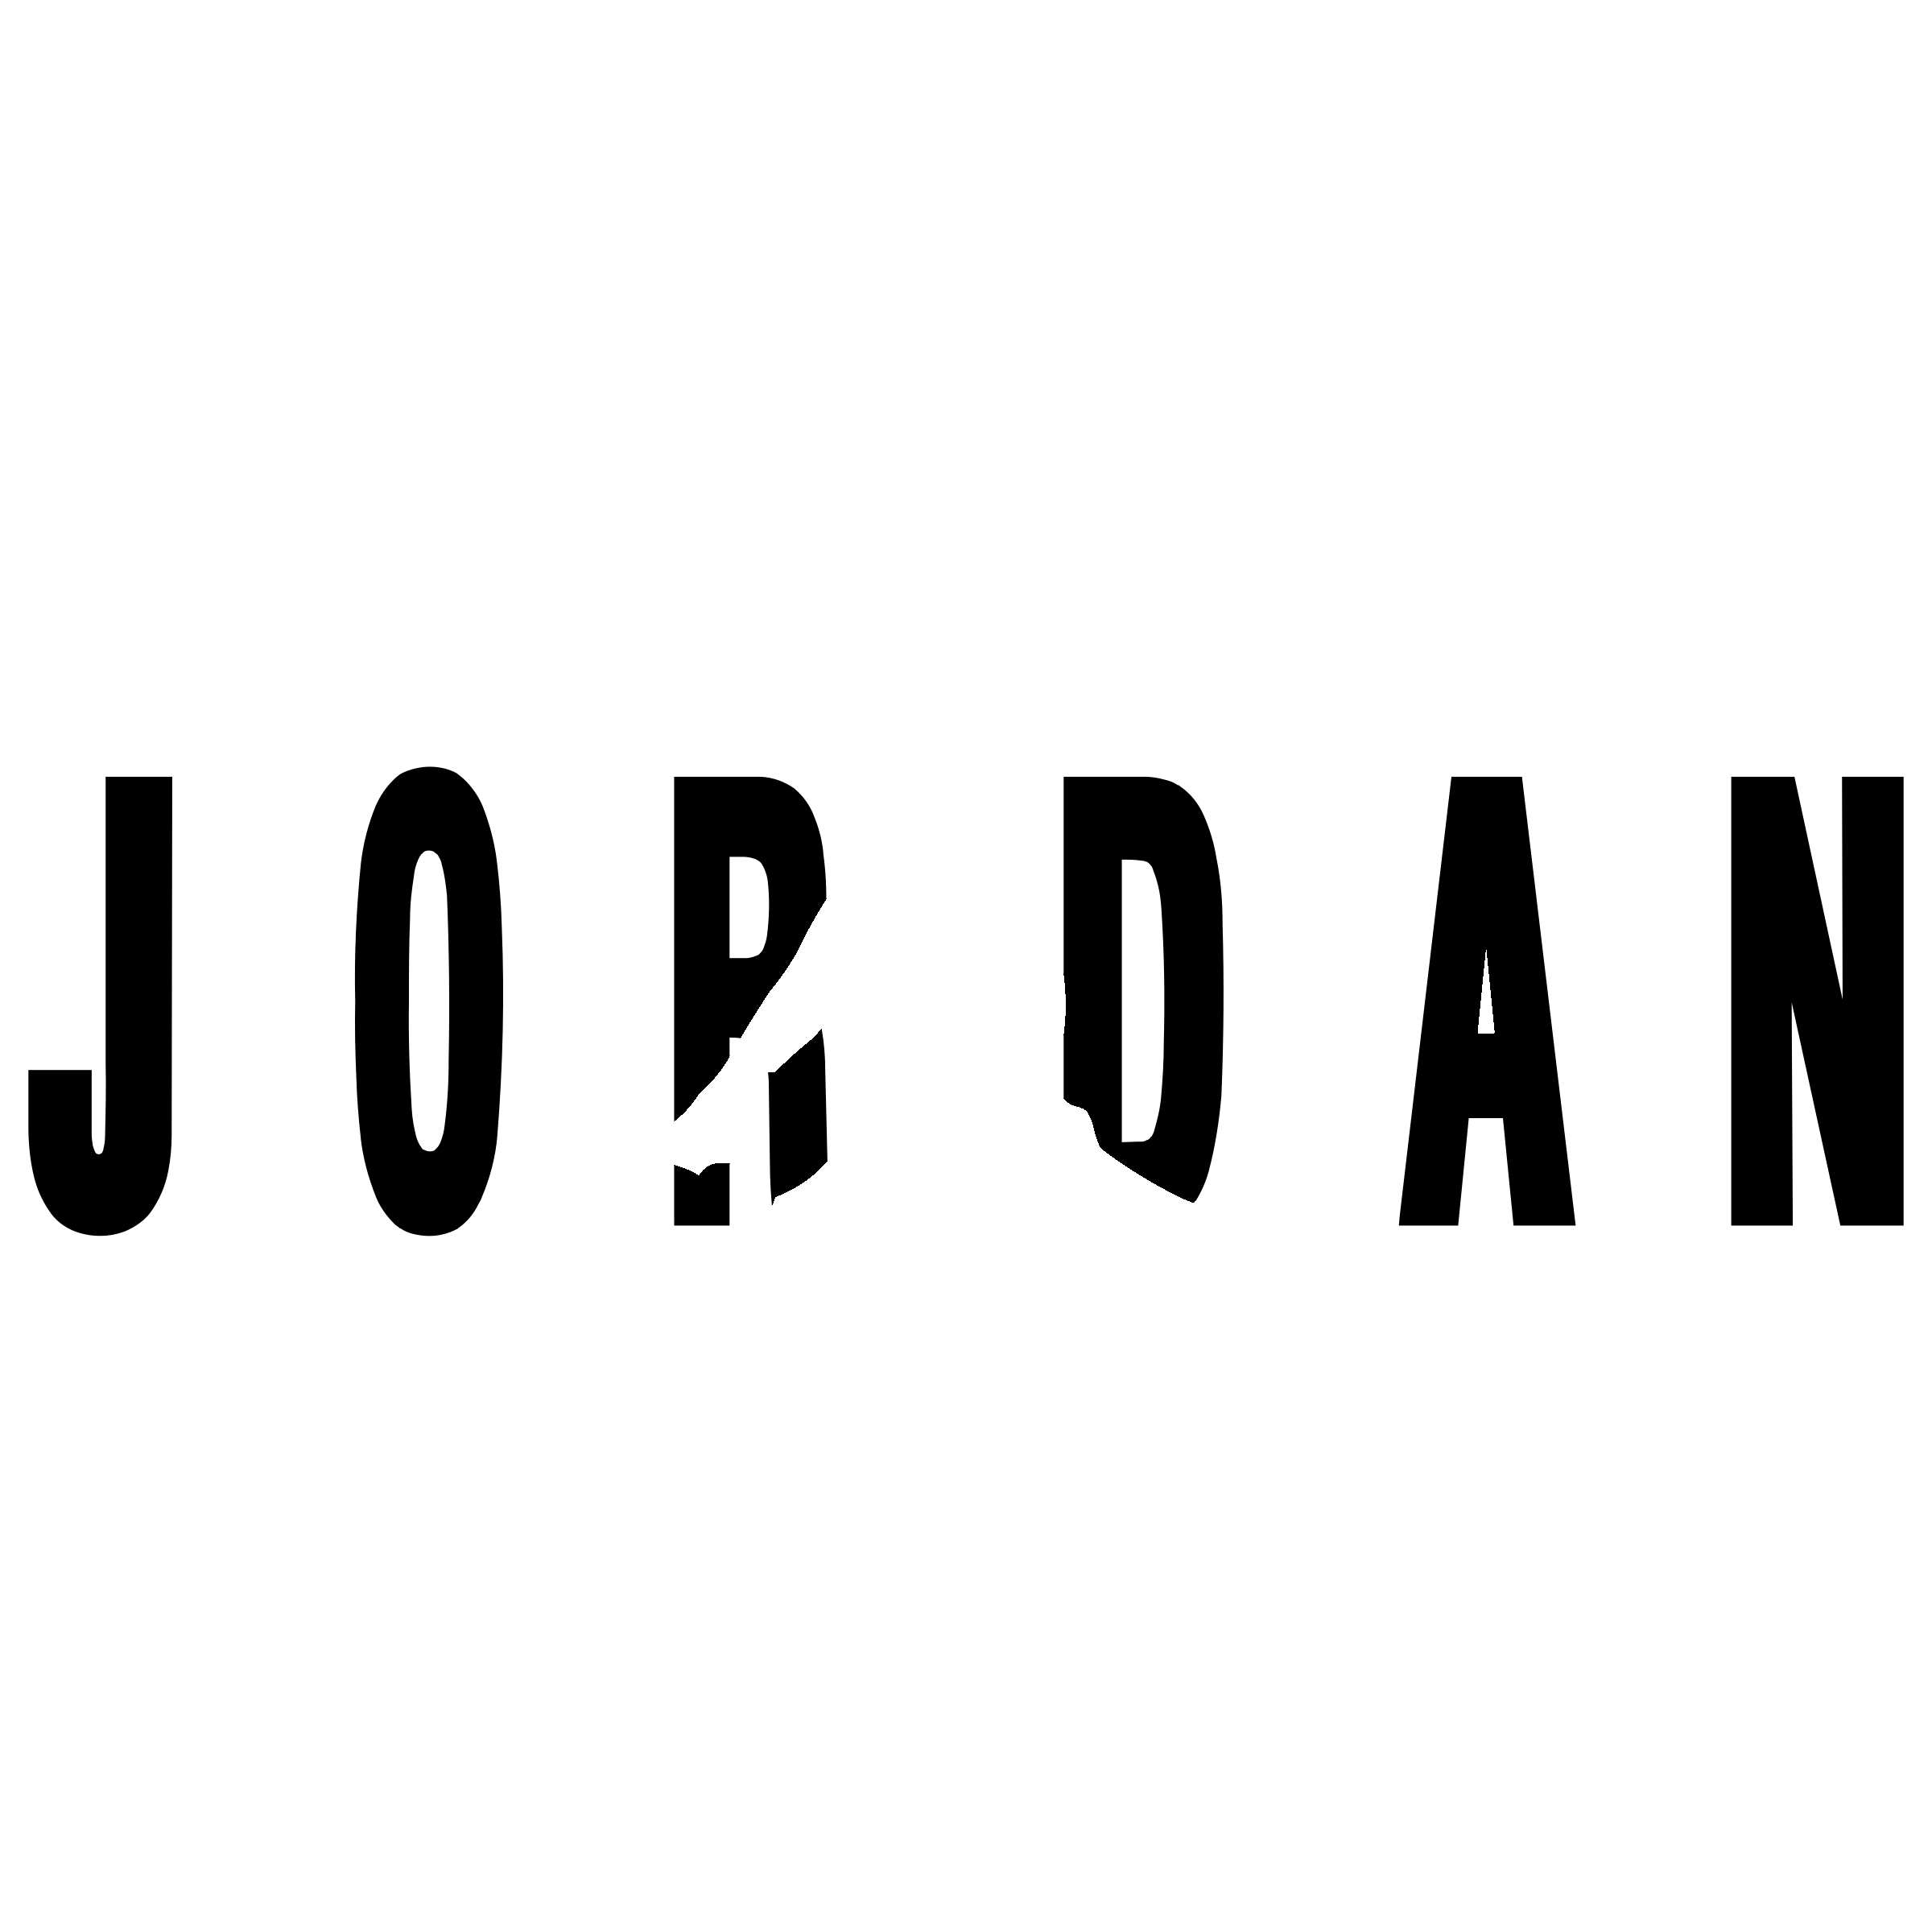 Jordan Logo - Jordan Air Logo PNG Transparent & SVG Vector - Freebie Supply